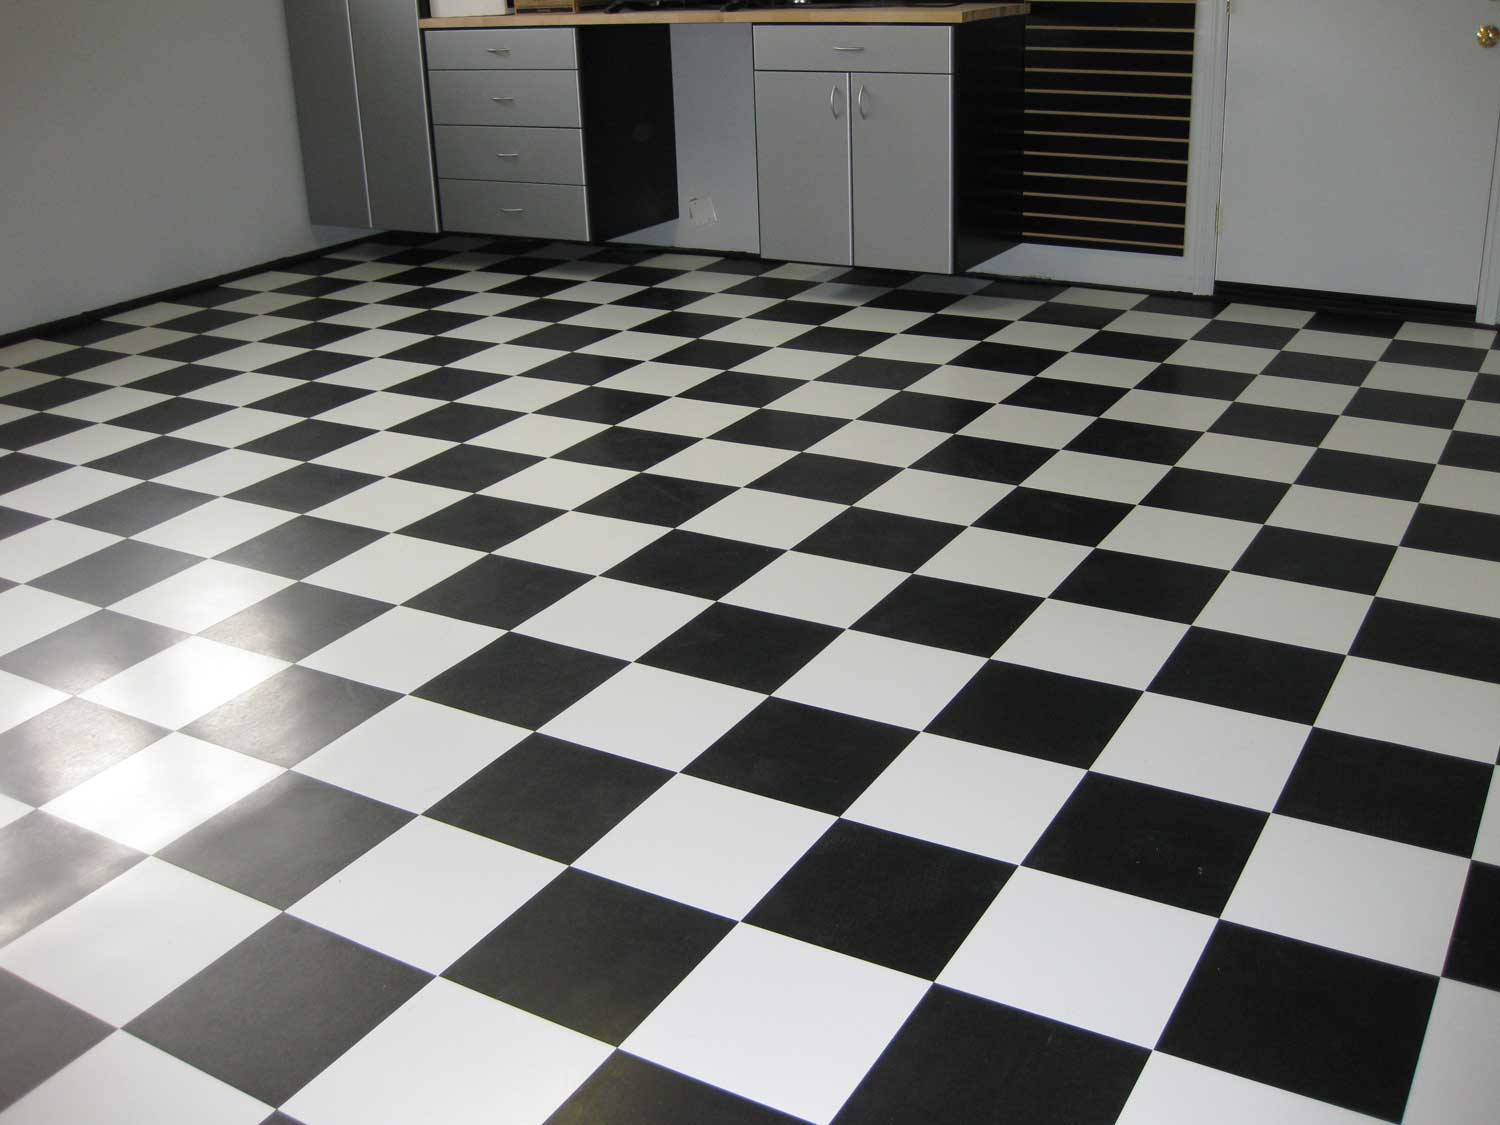 Black+And+White+Checkered+Flooring VCT Black and White Home Tile ...